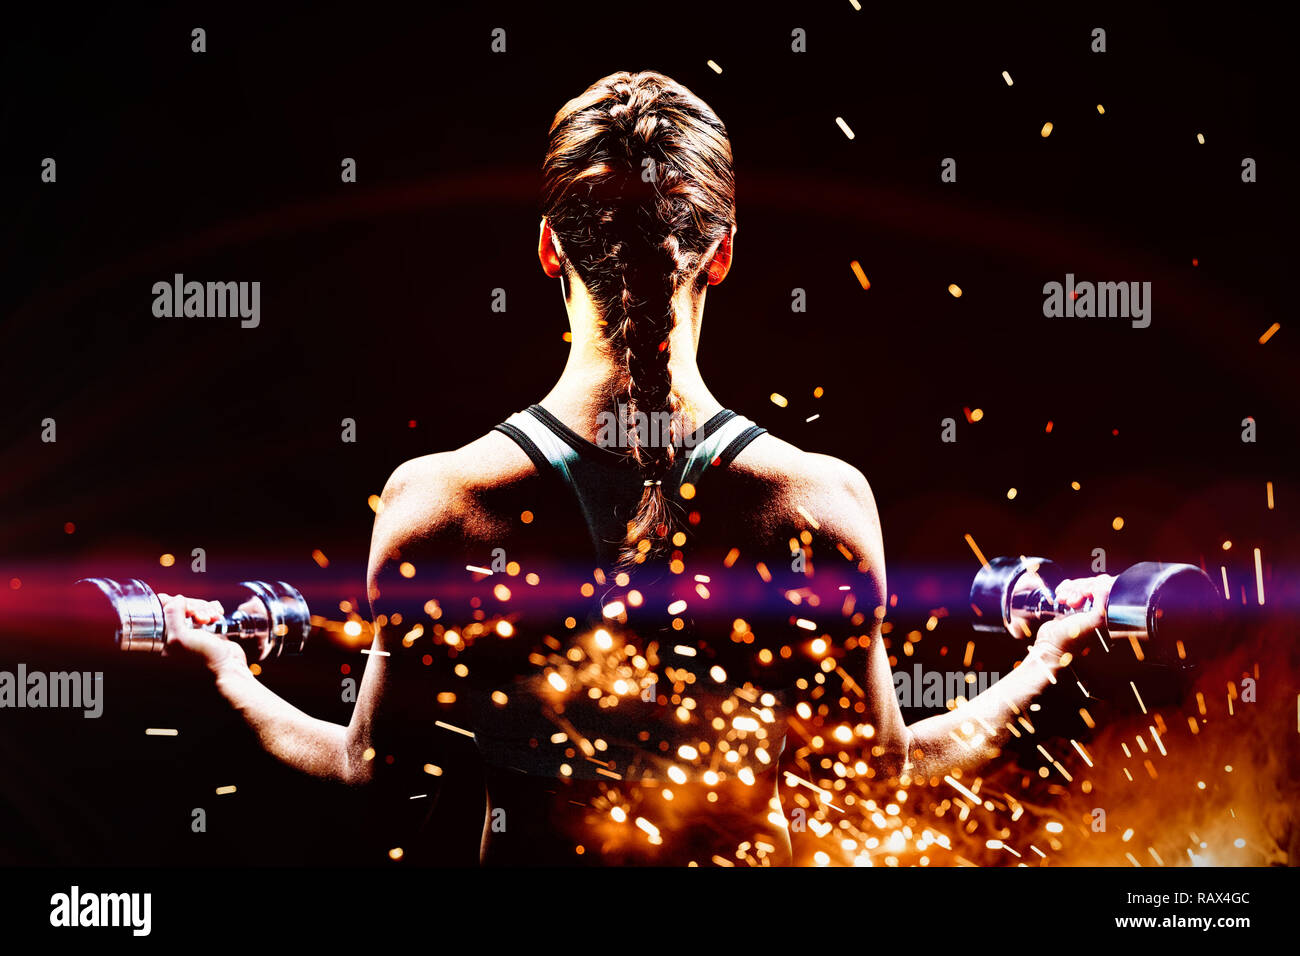 Composite image of rear view of braided hair woman lifting dumbbells - Stock Image